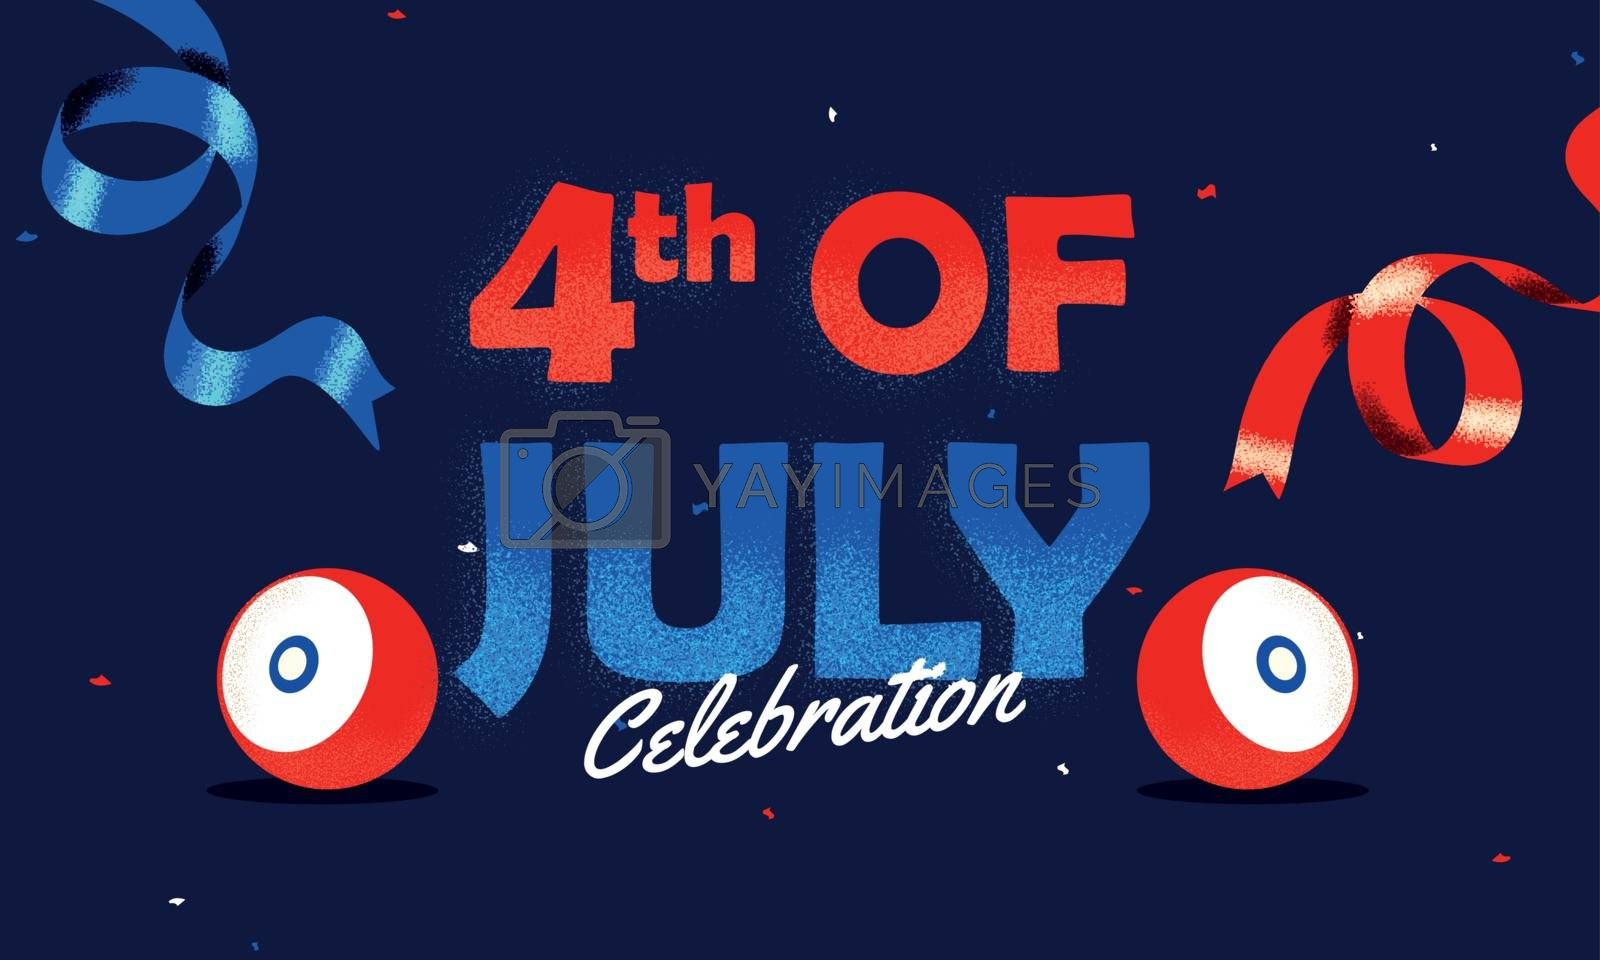 Royalty free image of 4th Of July Celebration banner or poster design with woofer illu by aispl